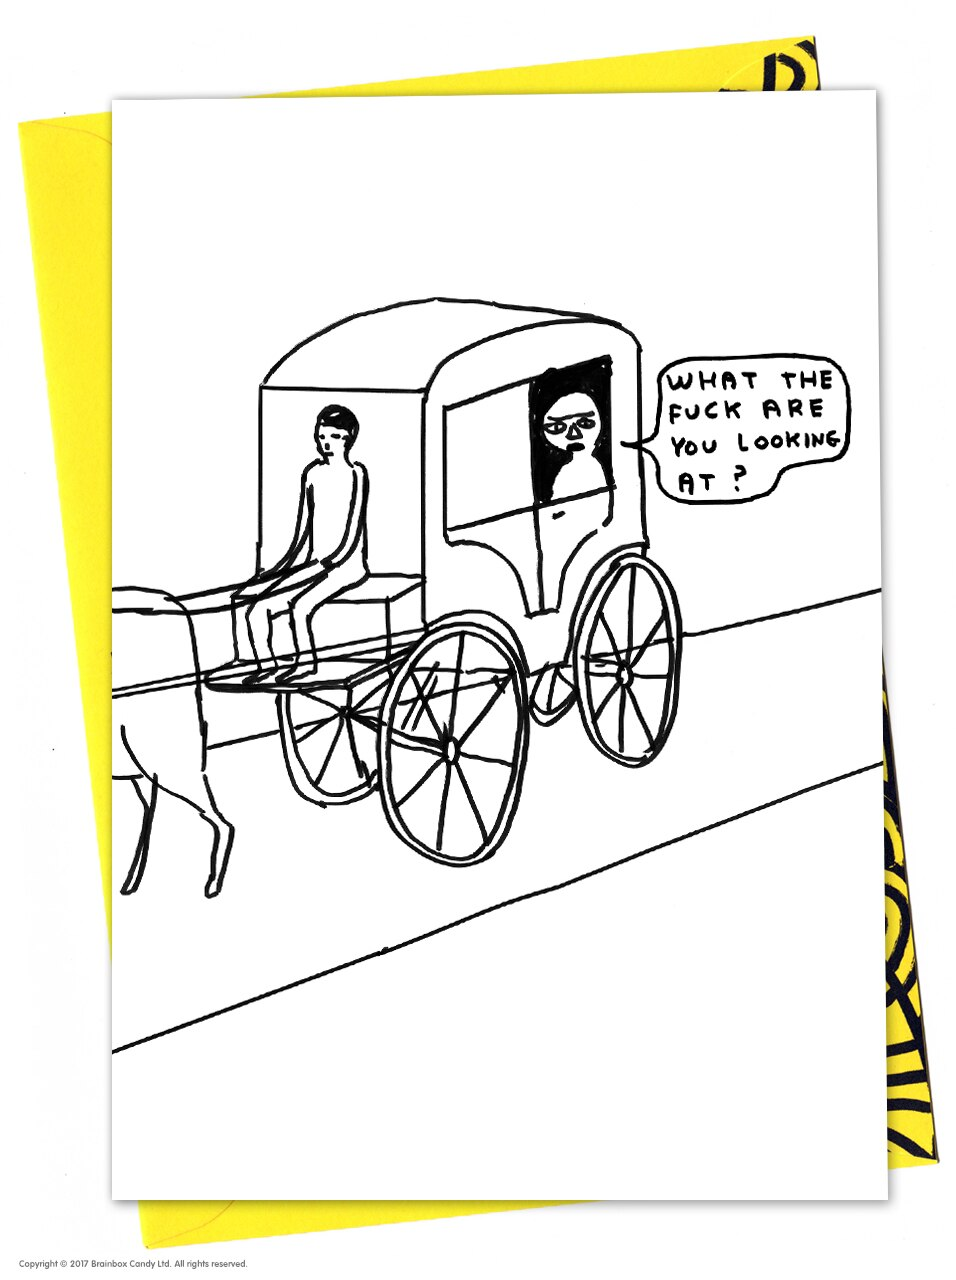 David Shrigley 'What Are You Looking At'  Birthday Card